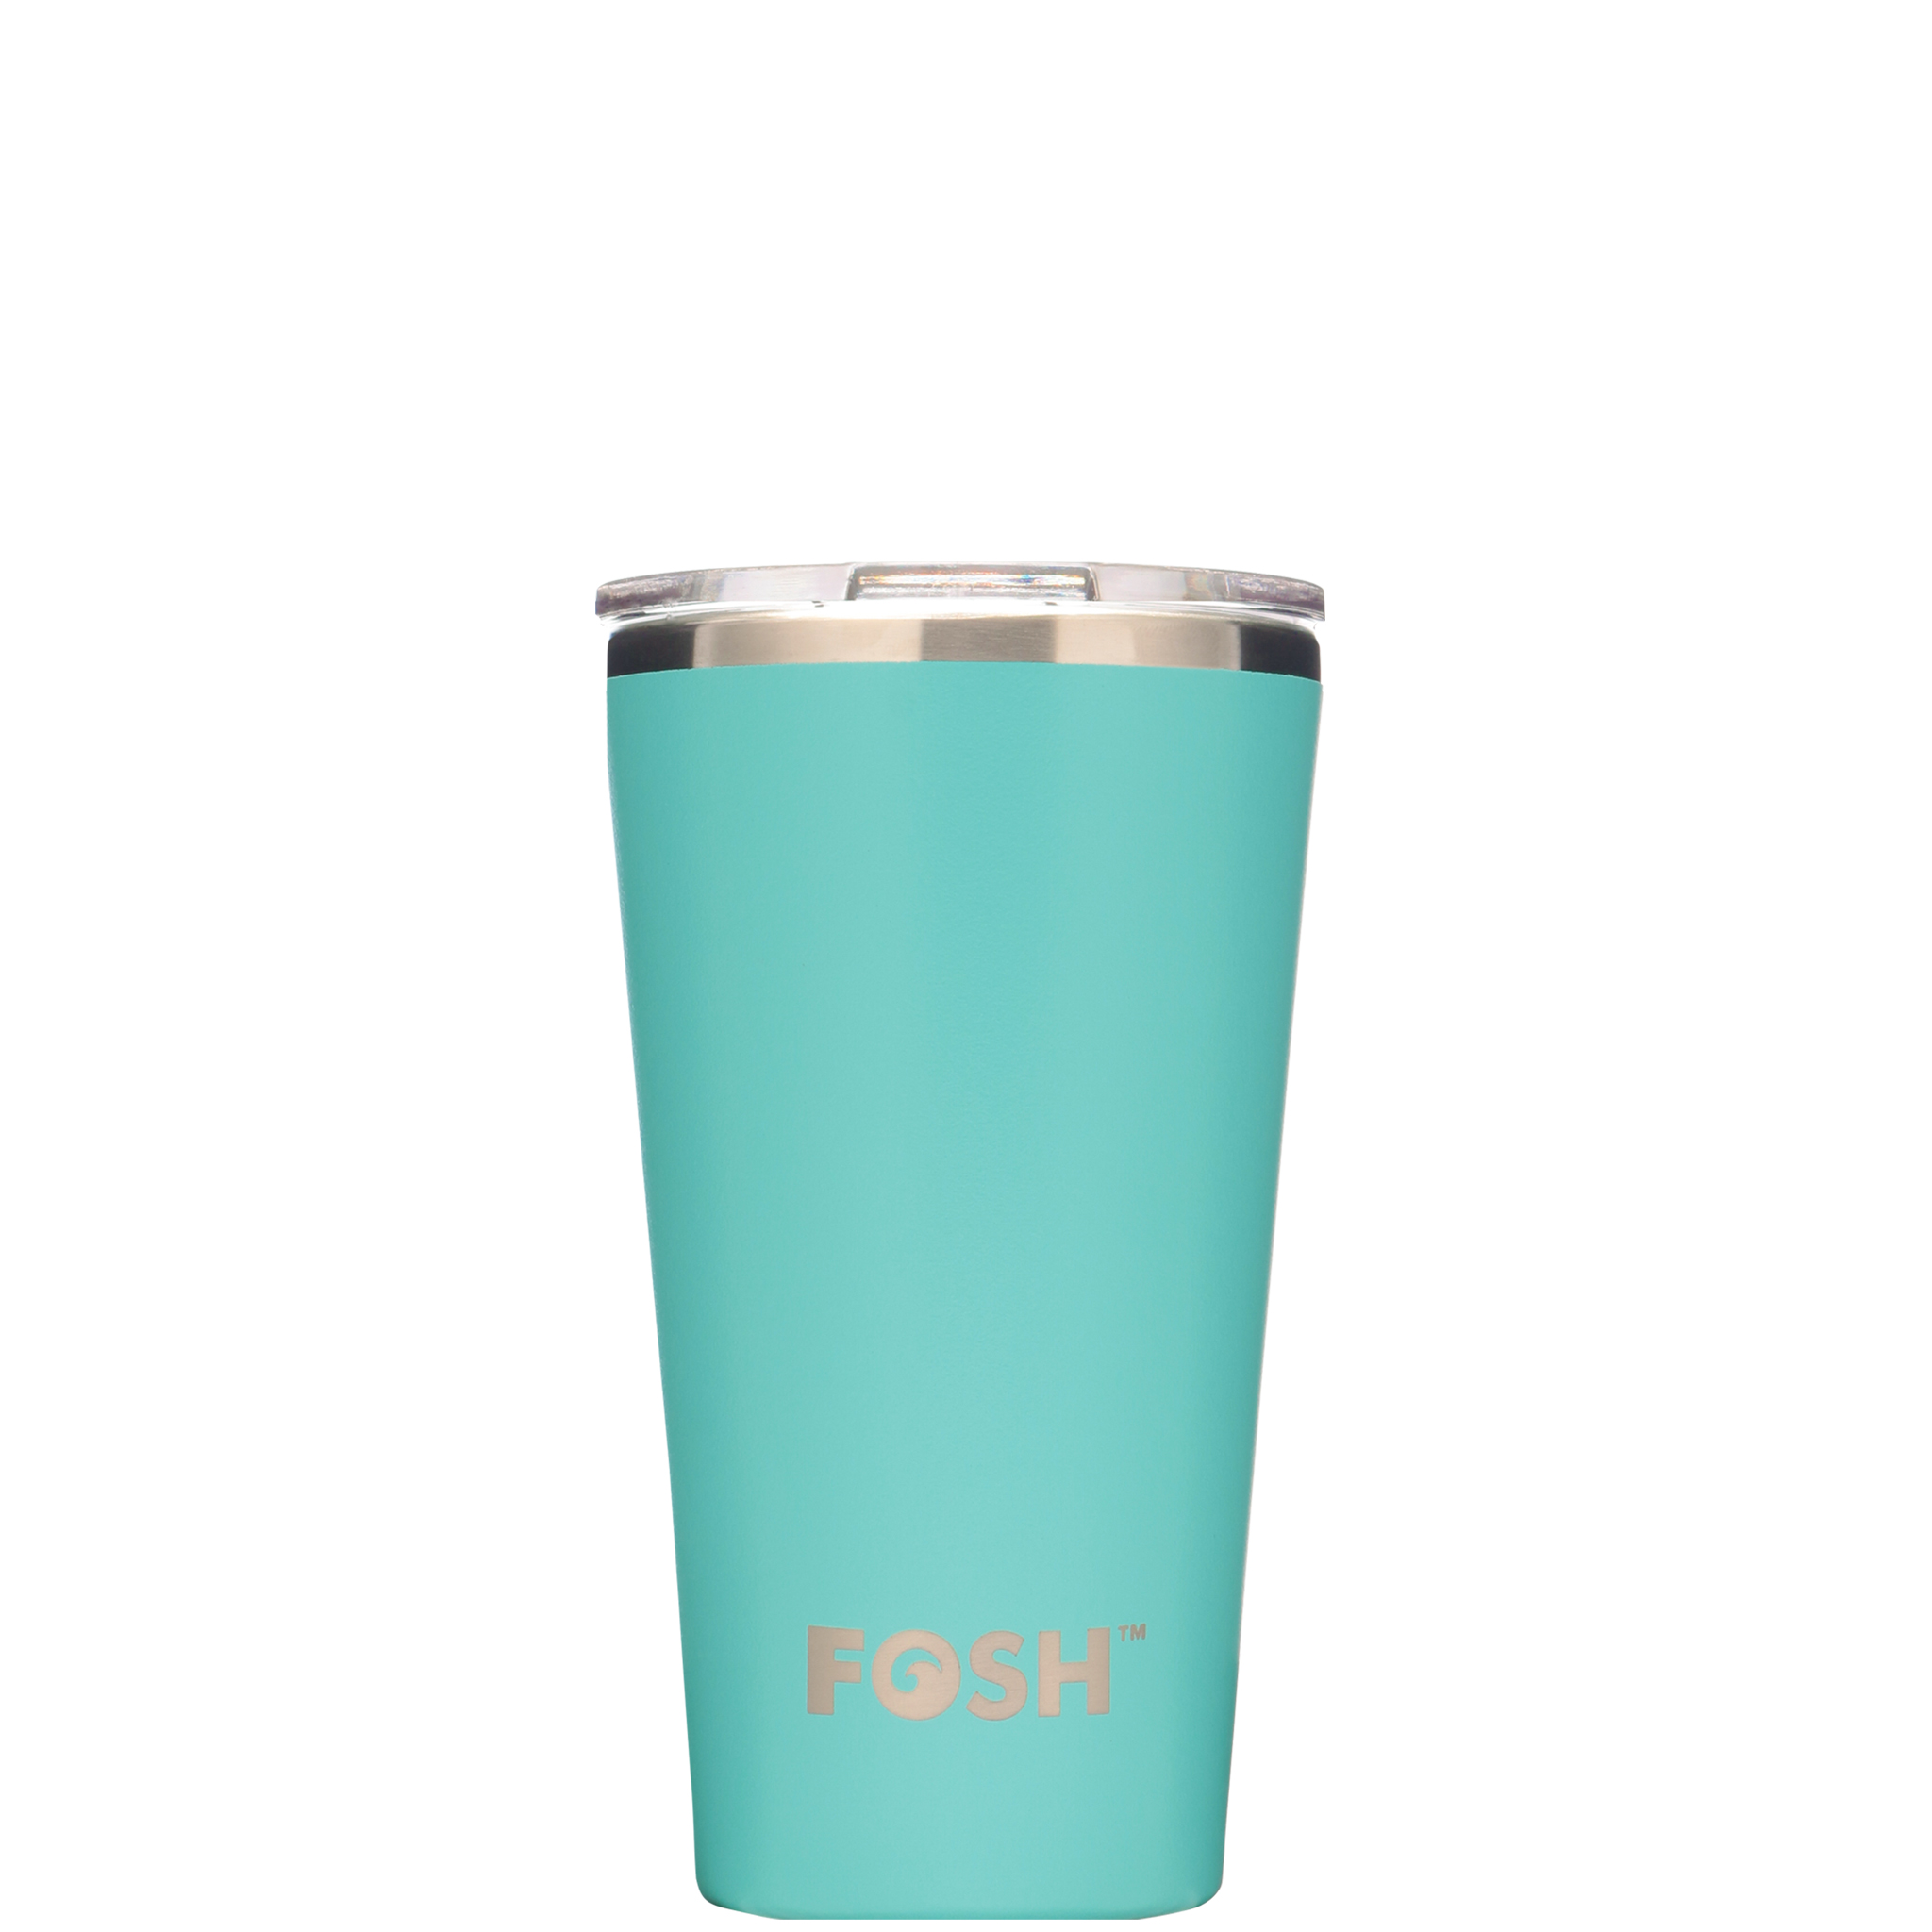 Stainless steel insulated coffee cup - Social caribbean